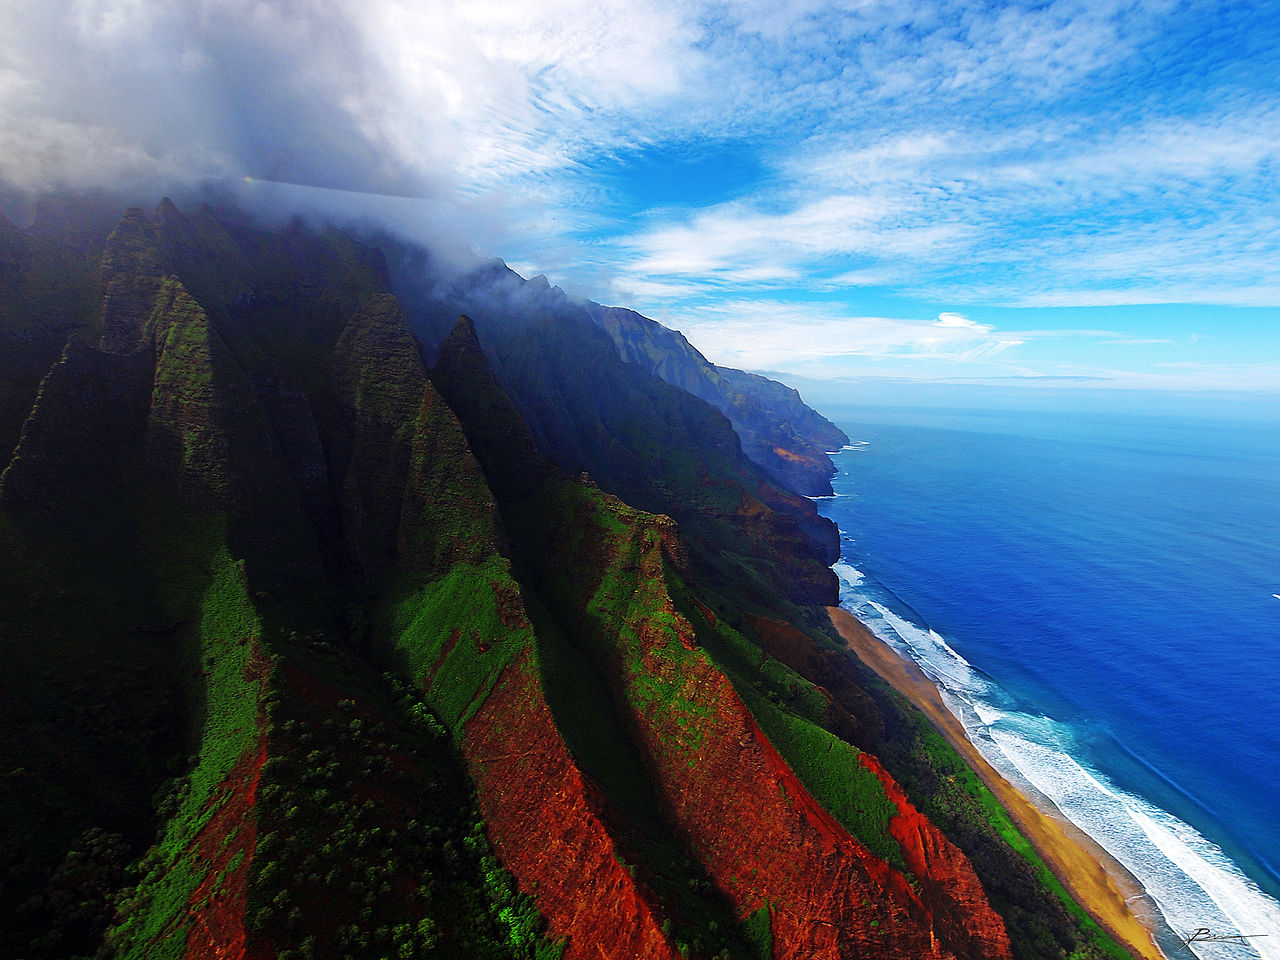 File:Coast of Kauai, Hawaii.jpg - Wikimedia Commons